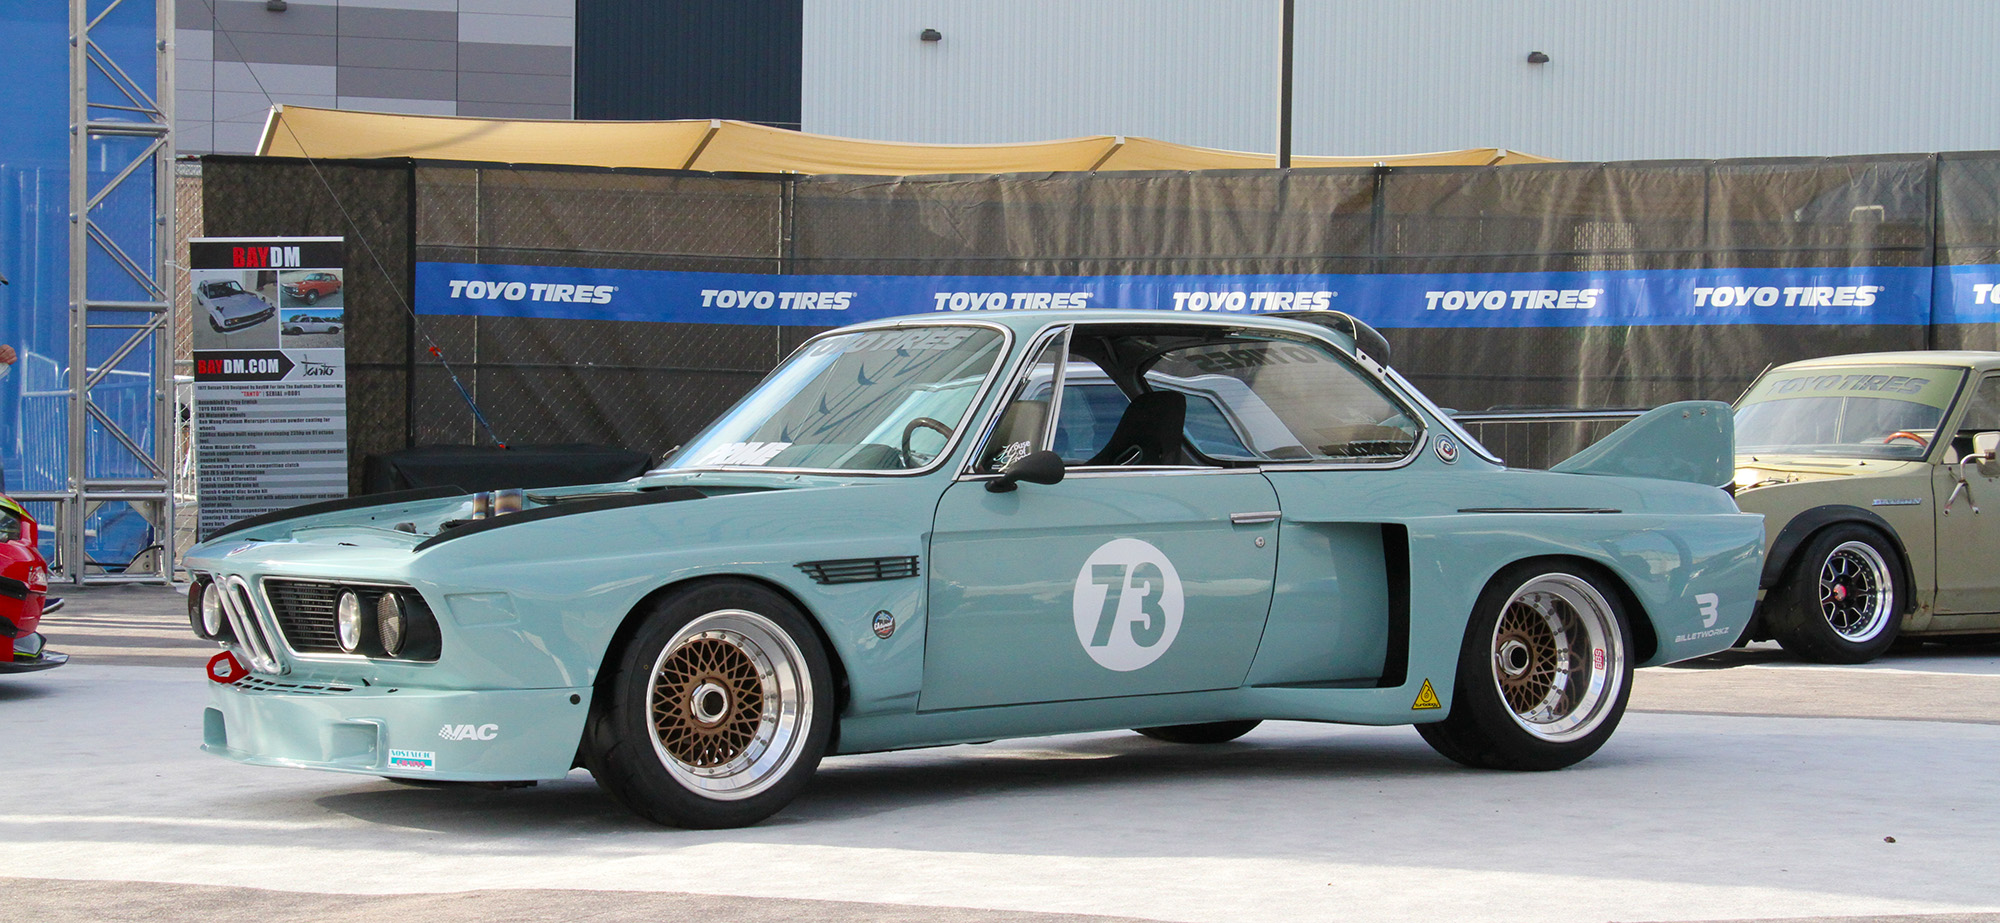 A Minty Fresh Take on an Old Classic | Articles | Grassroots Motorsports